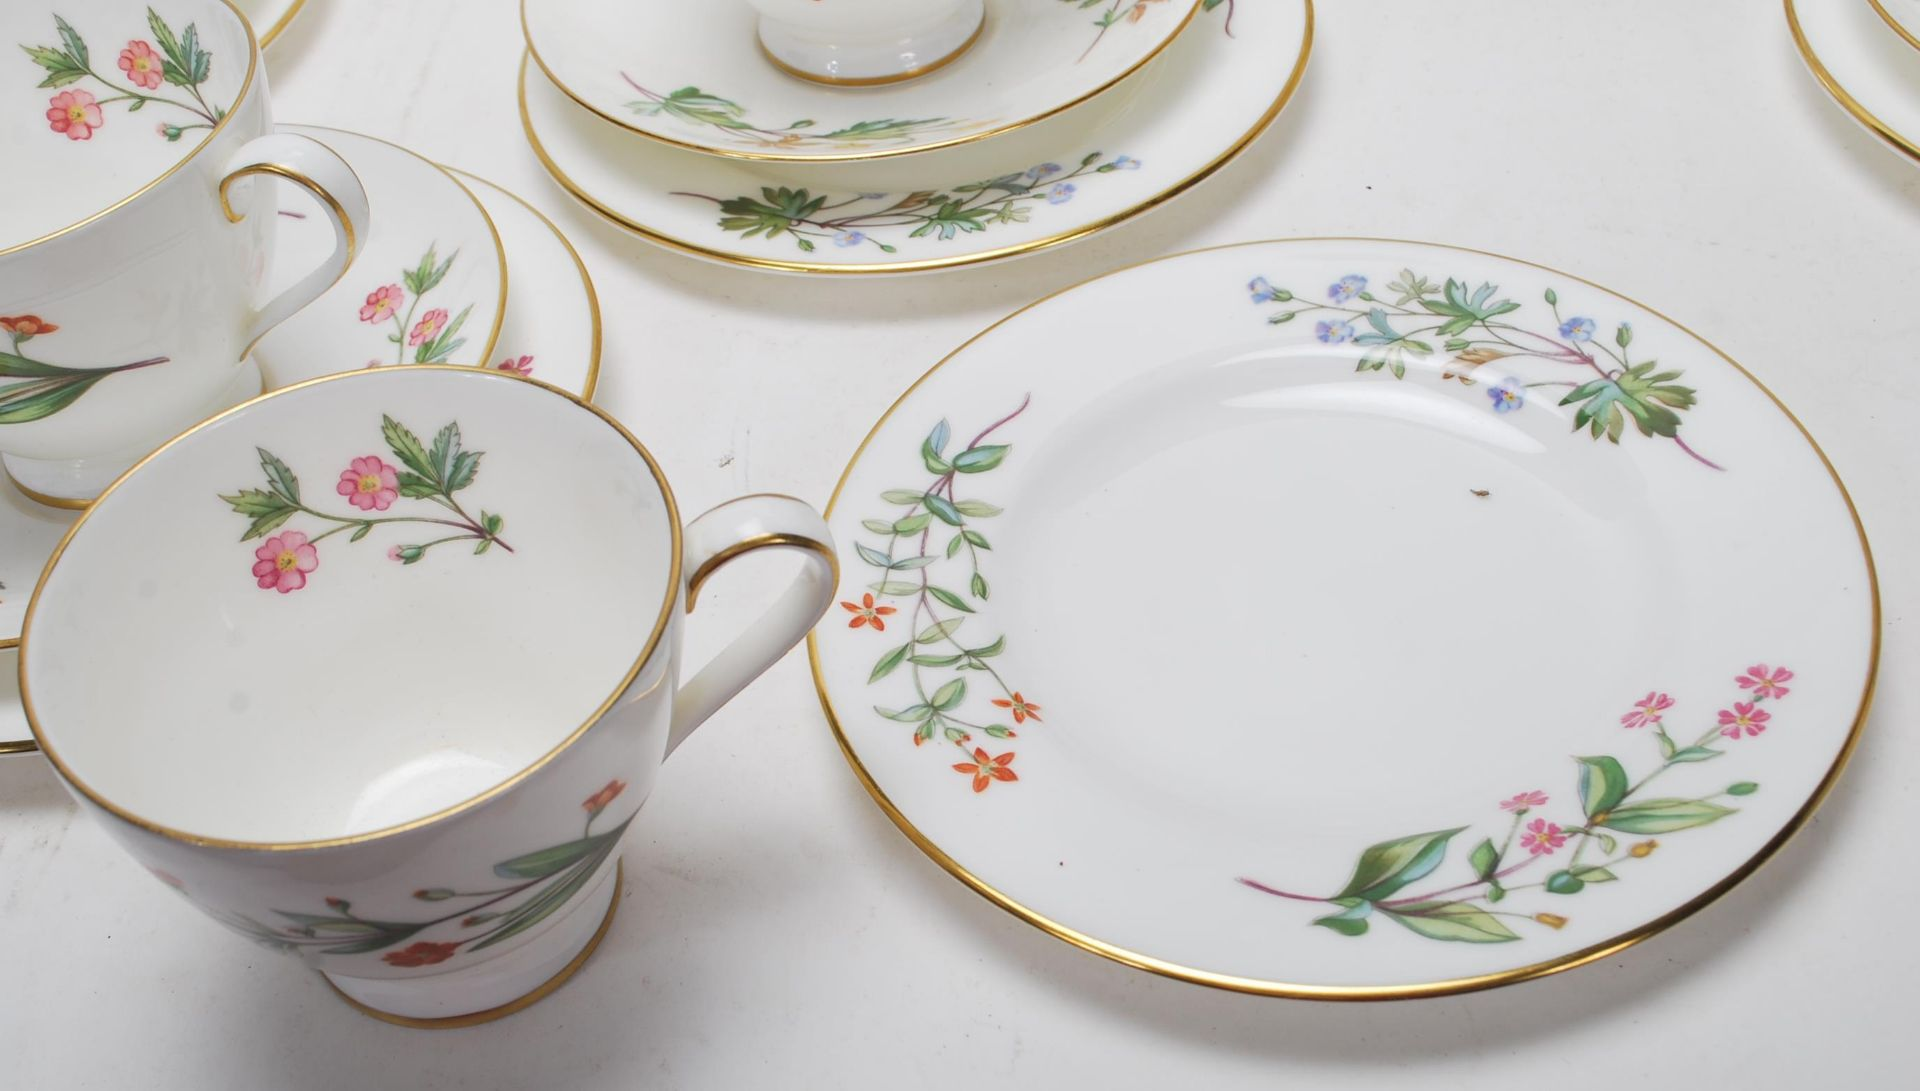 MINTON MEADOW PATTERN BONE CHINA TEA SERVICE - Image 6 of 12